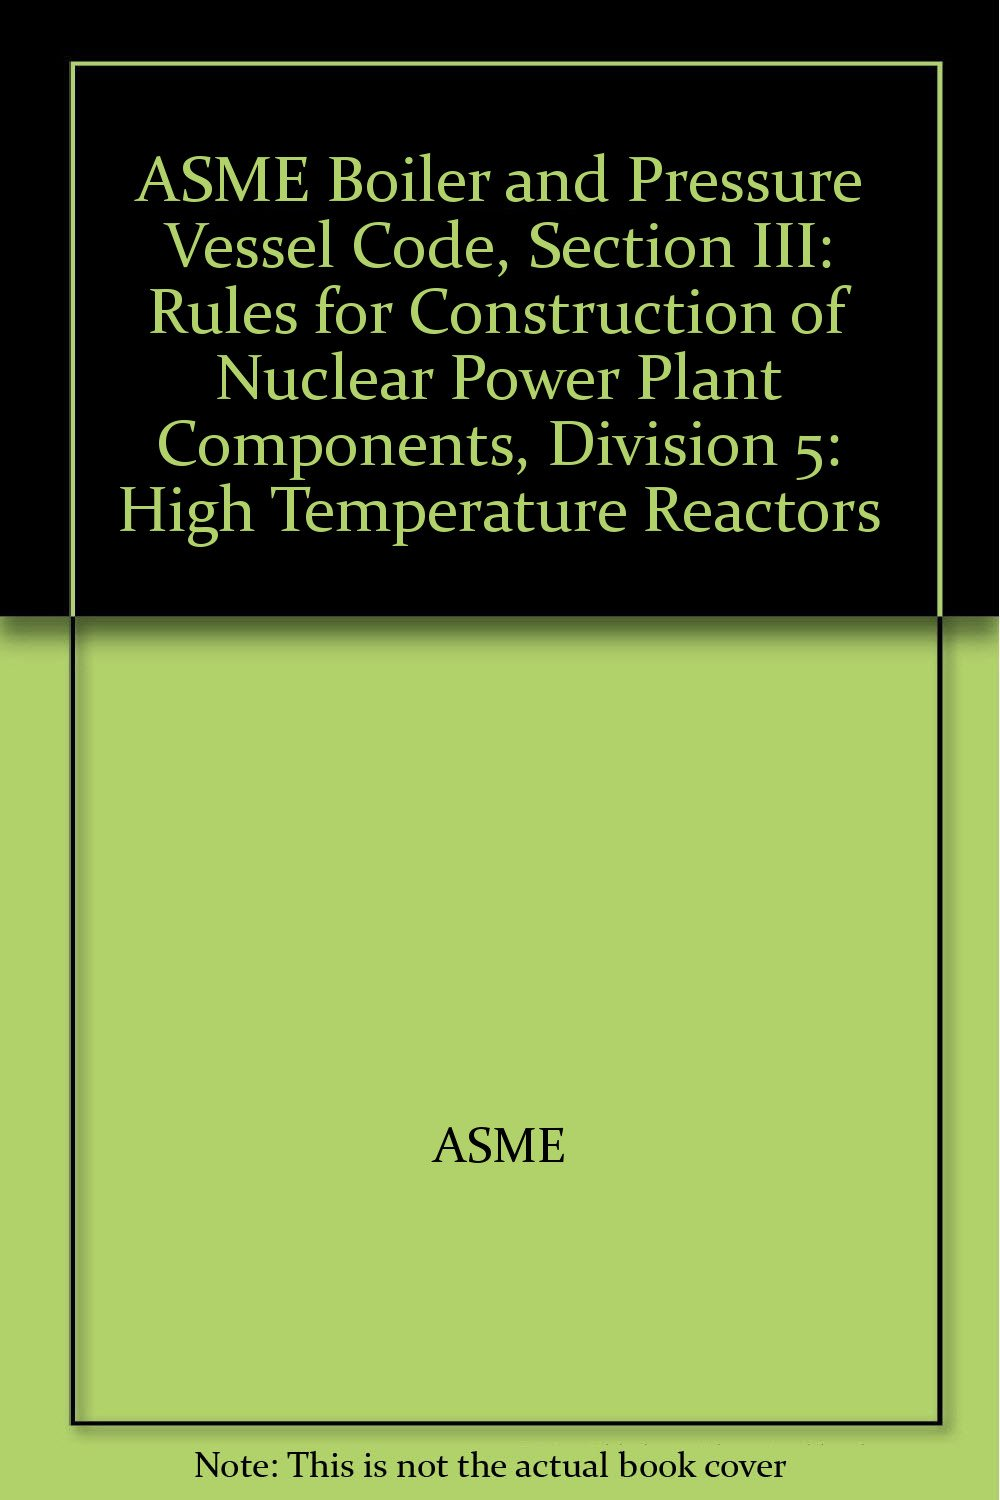 ASME Boiler and Pressure Vessel Code, Section III: Rules for Construction of Nuclear Power Plant Components, Division 5: High Temperature Reactors pdf